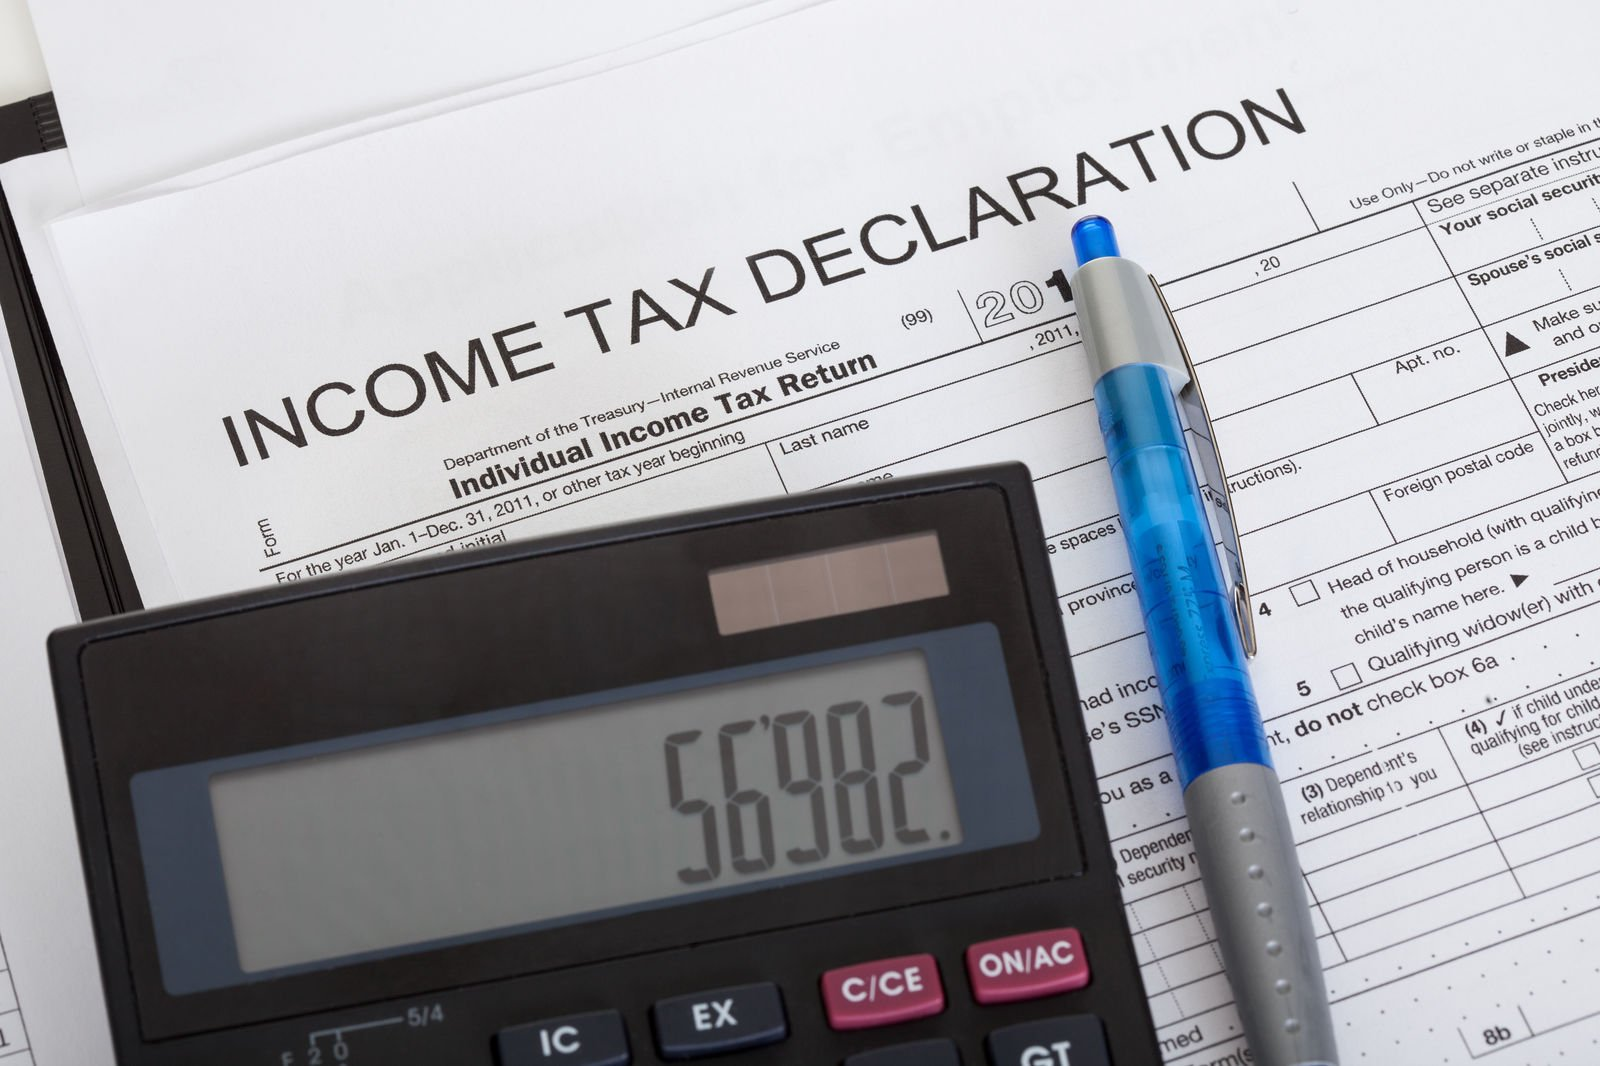 Are car insurance premiums tax deductible?